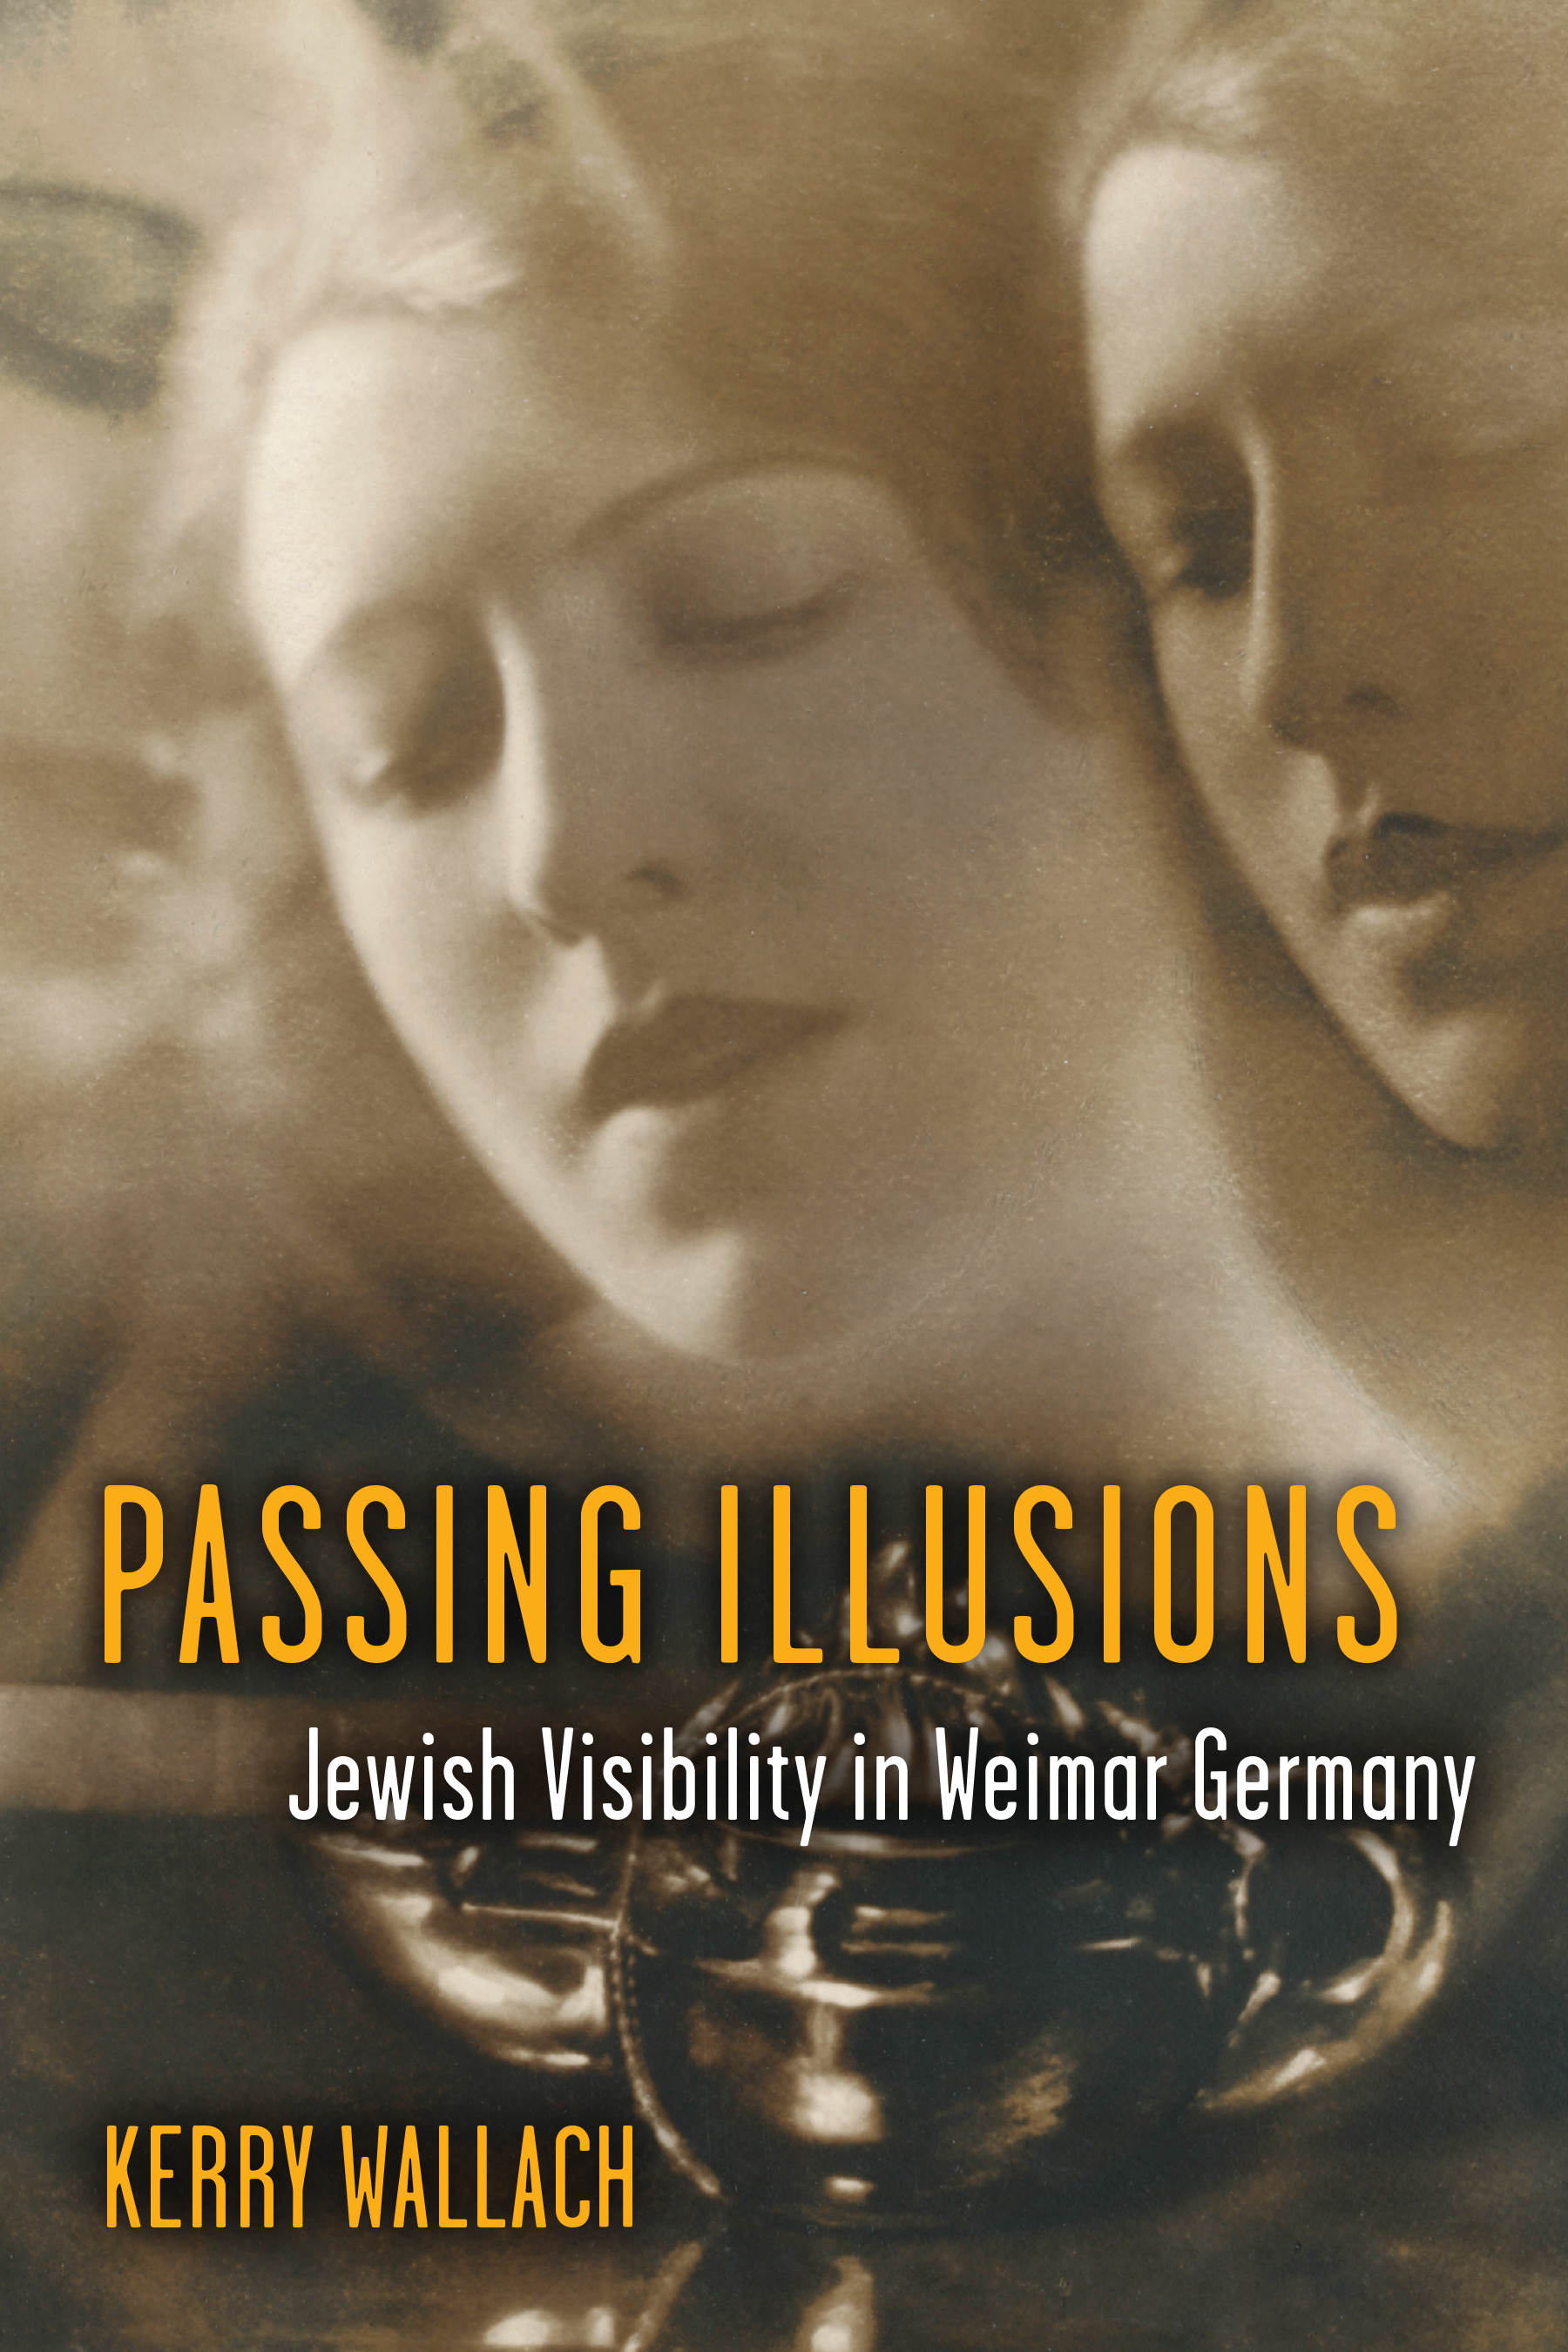 The jazz republic cover image for passing illusions fandeluxe Images